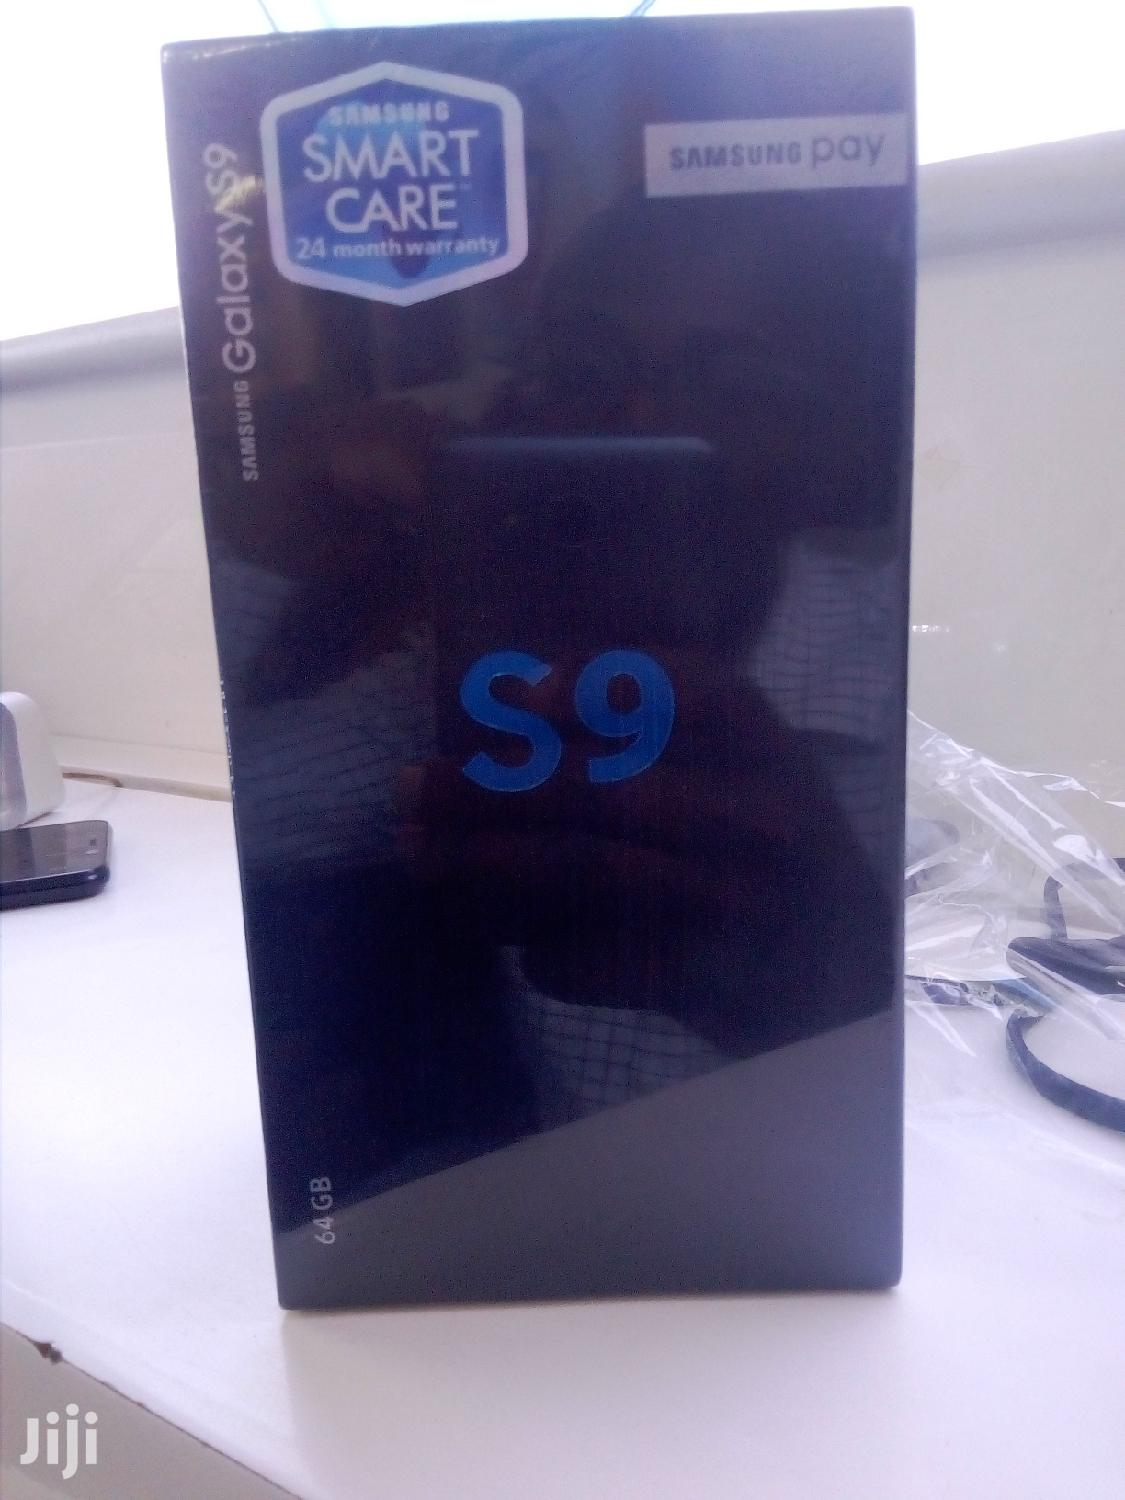 New Samsung Galaxy S9 128 GB | Mobile Phones for sale in Nairobi Central, Nairobi, Kenya